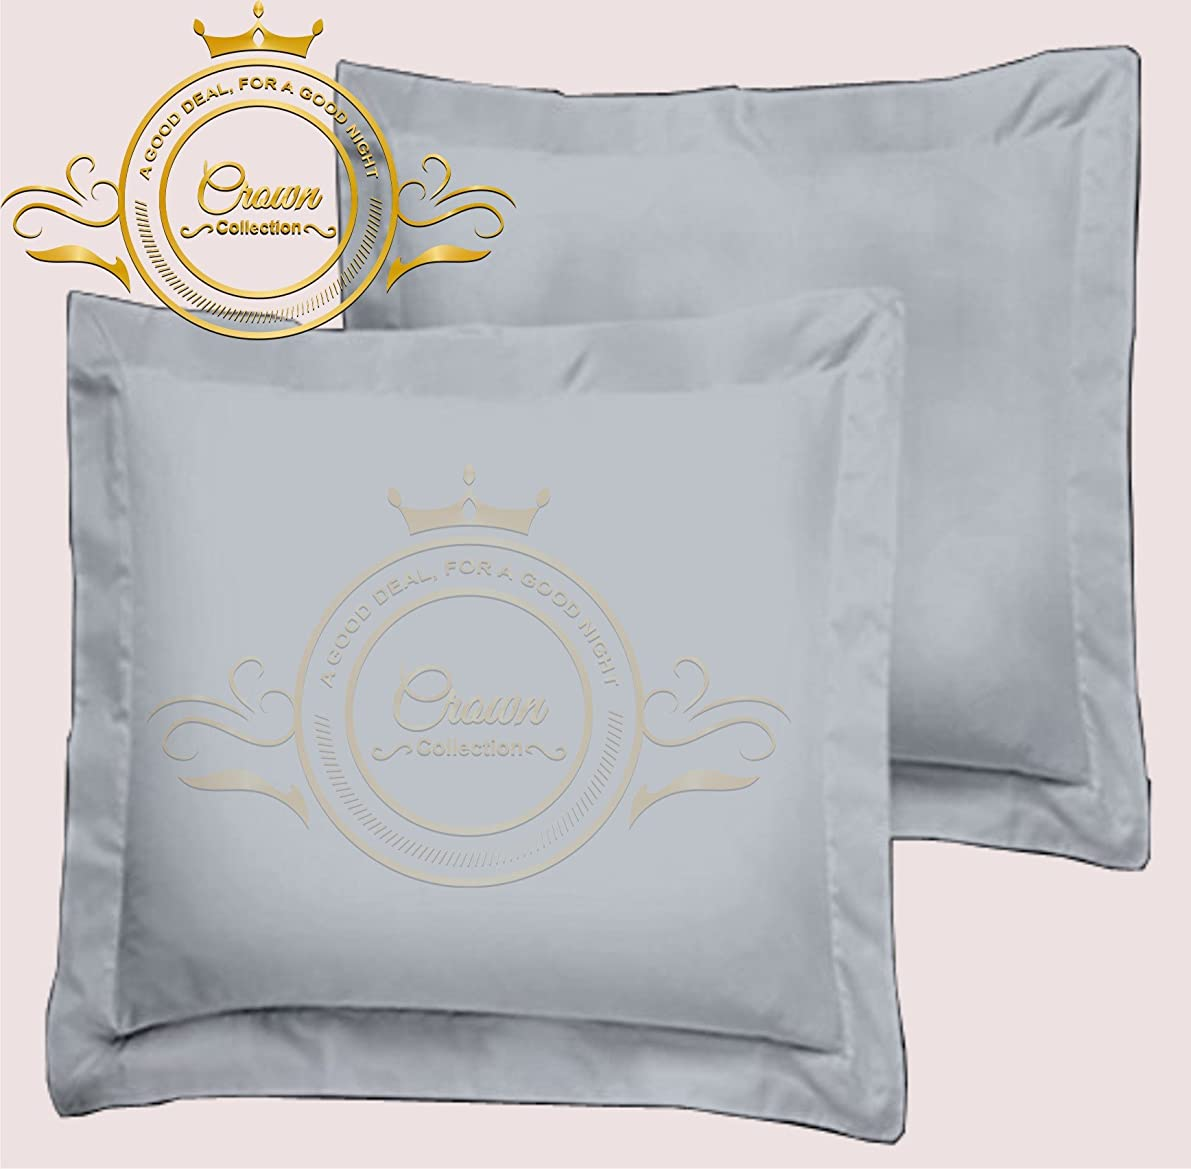 Crown Collection American Size Set of 2pcs Pillow Case 650 Thread Count Euro 26x26 Inch Size Export Quality Silver/Light Gray Solid Egyptian Cotton